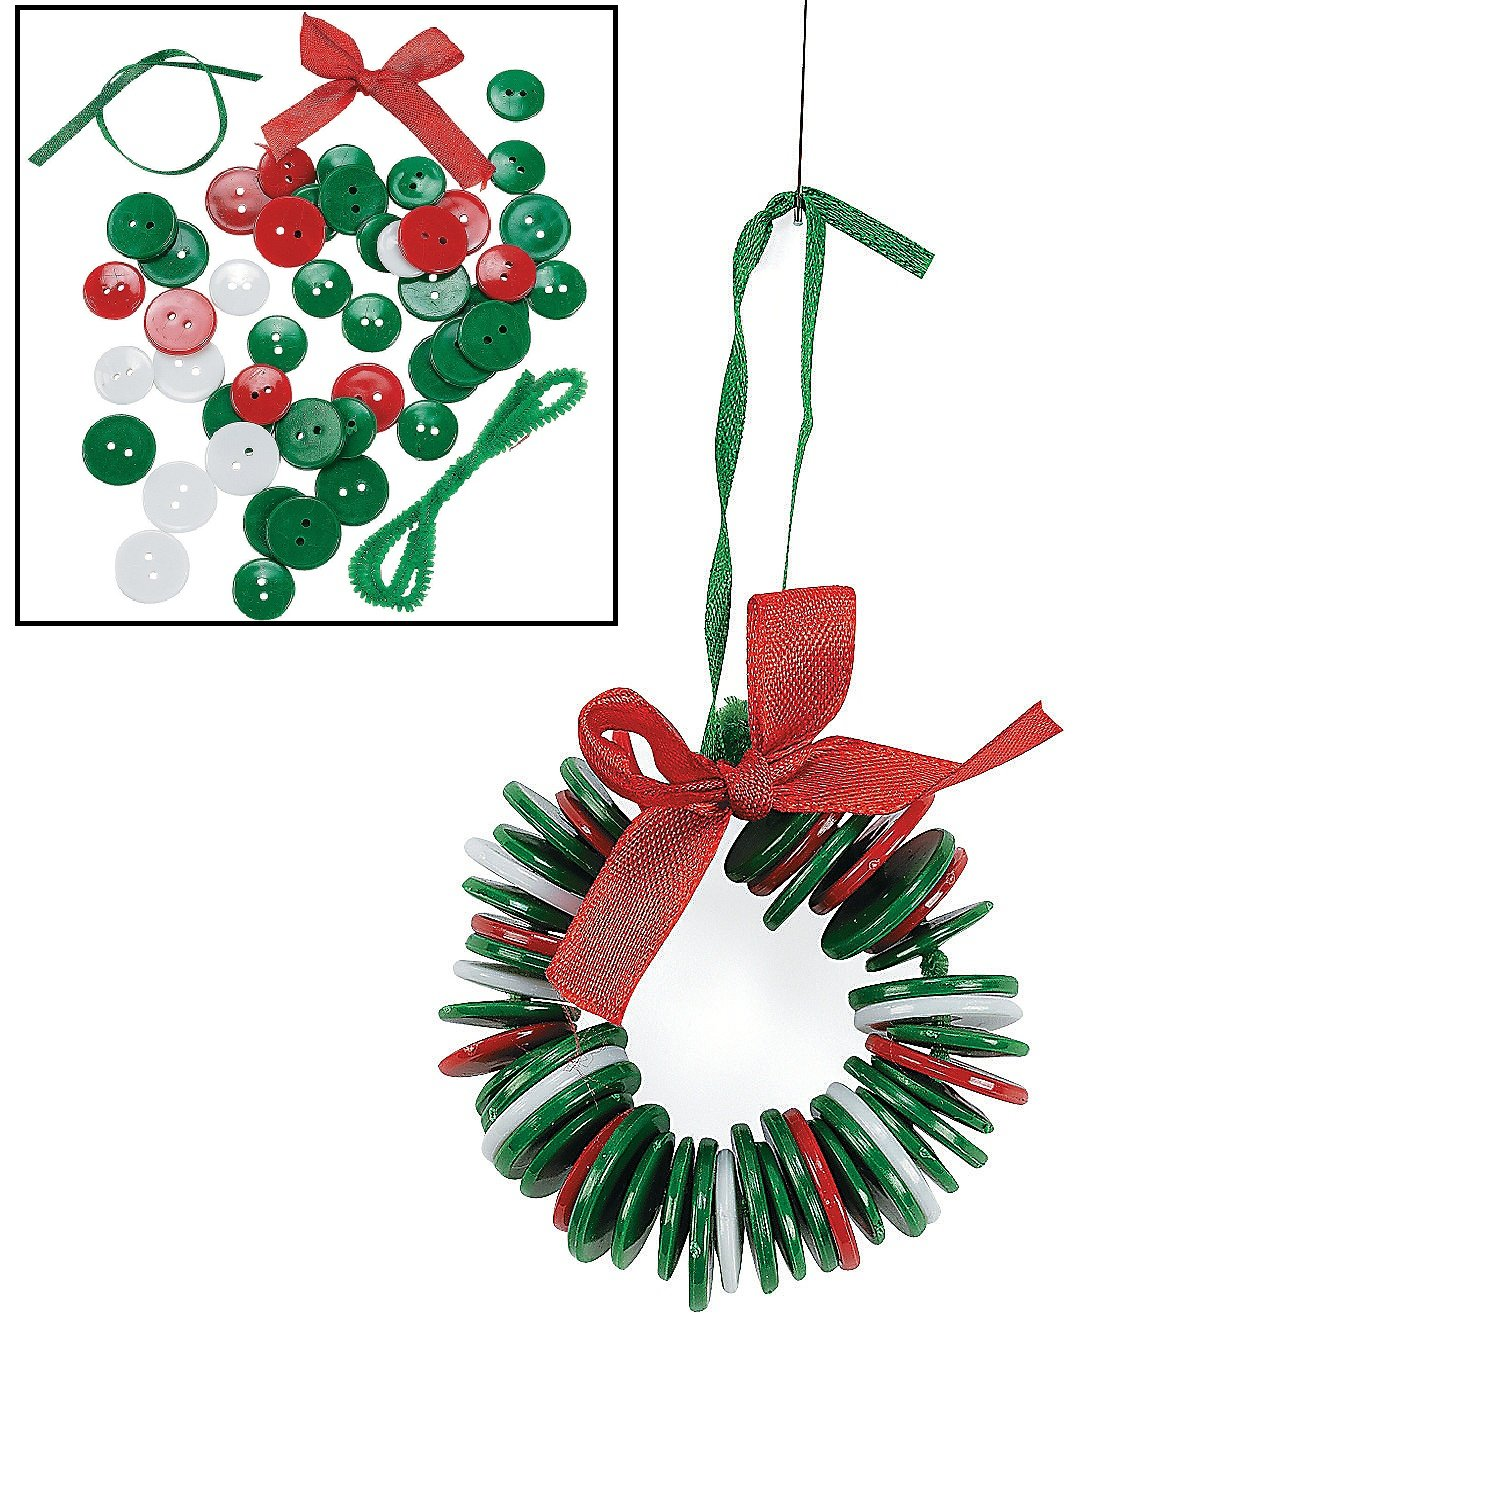 Amazon.com: Button Wreath Ornament Craft Kit for Kids: Arts, Crafts ...